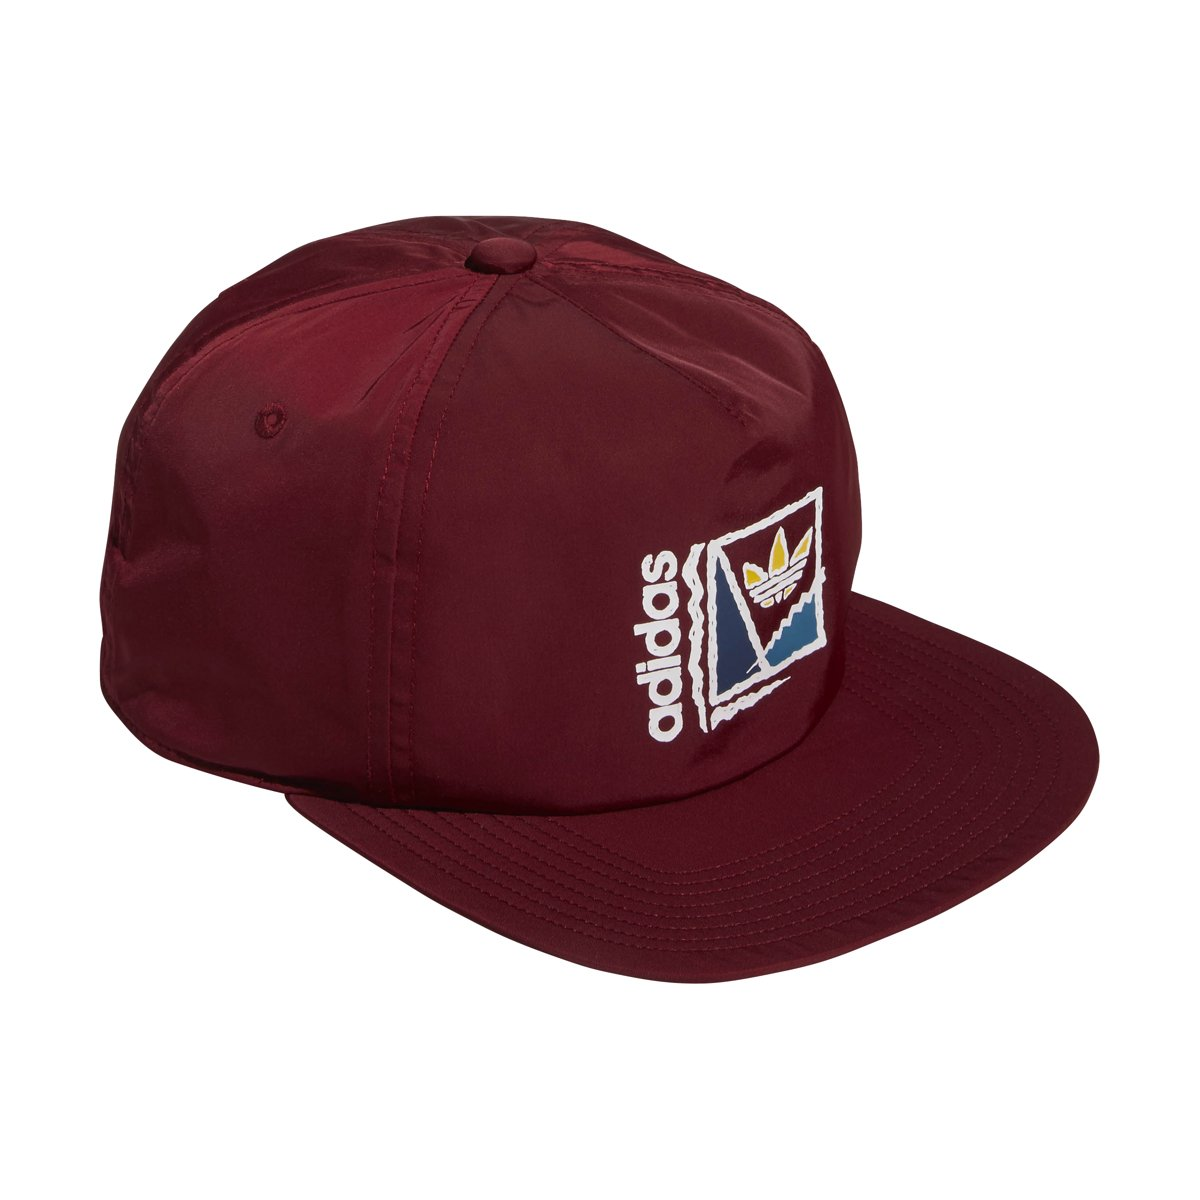 super specials lace up in best service Amazon.com: adidas Men Skateboarding courtcrusher Hat ...